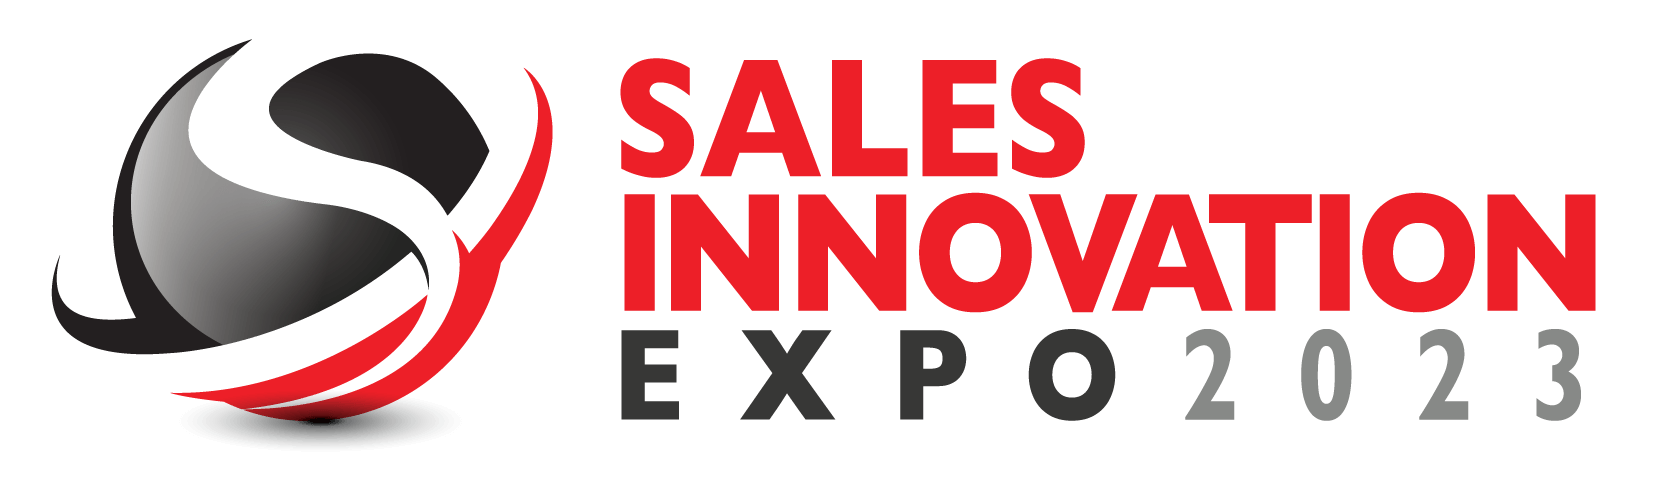 Sales Innovation Expo California logo